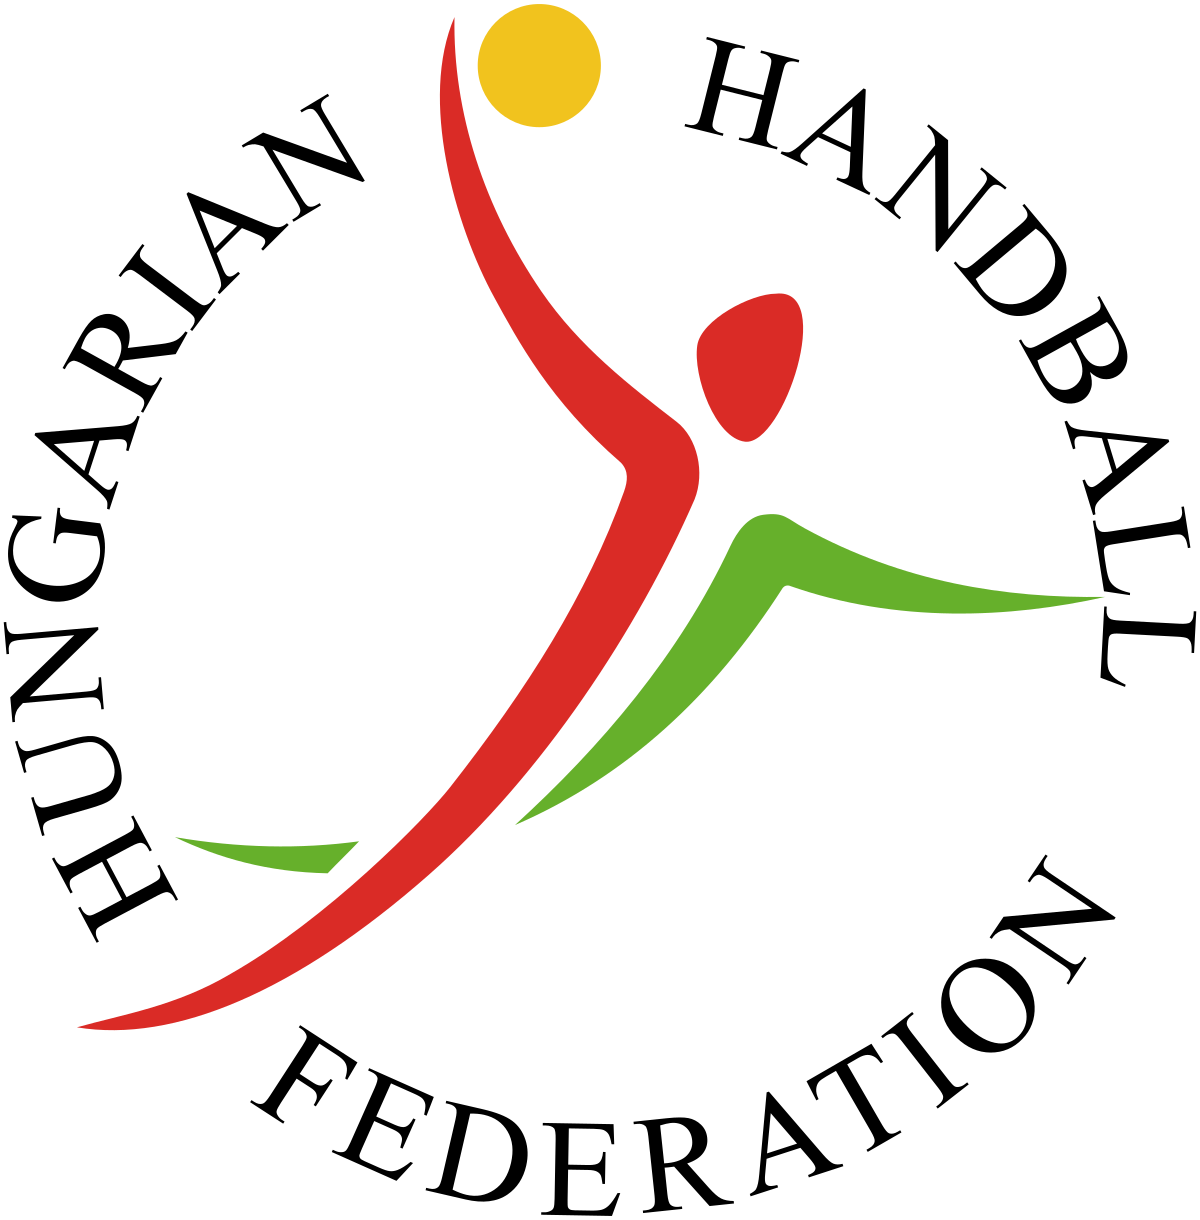 Dancer clipart hungarian. Handball federation wikipedia